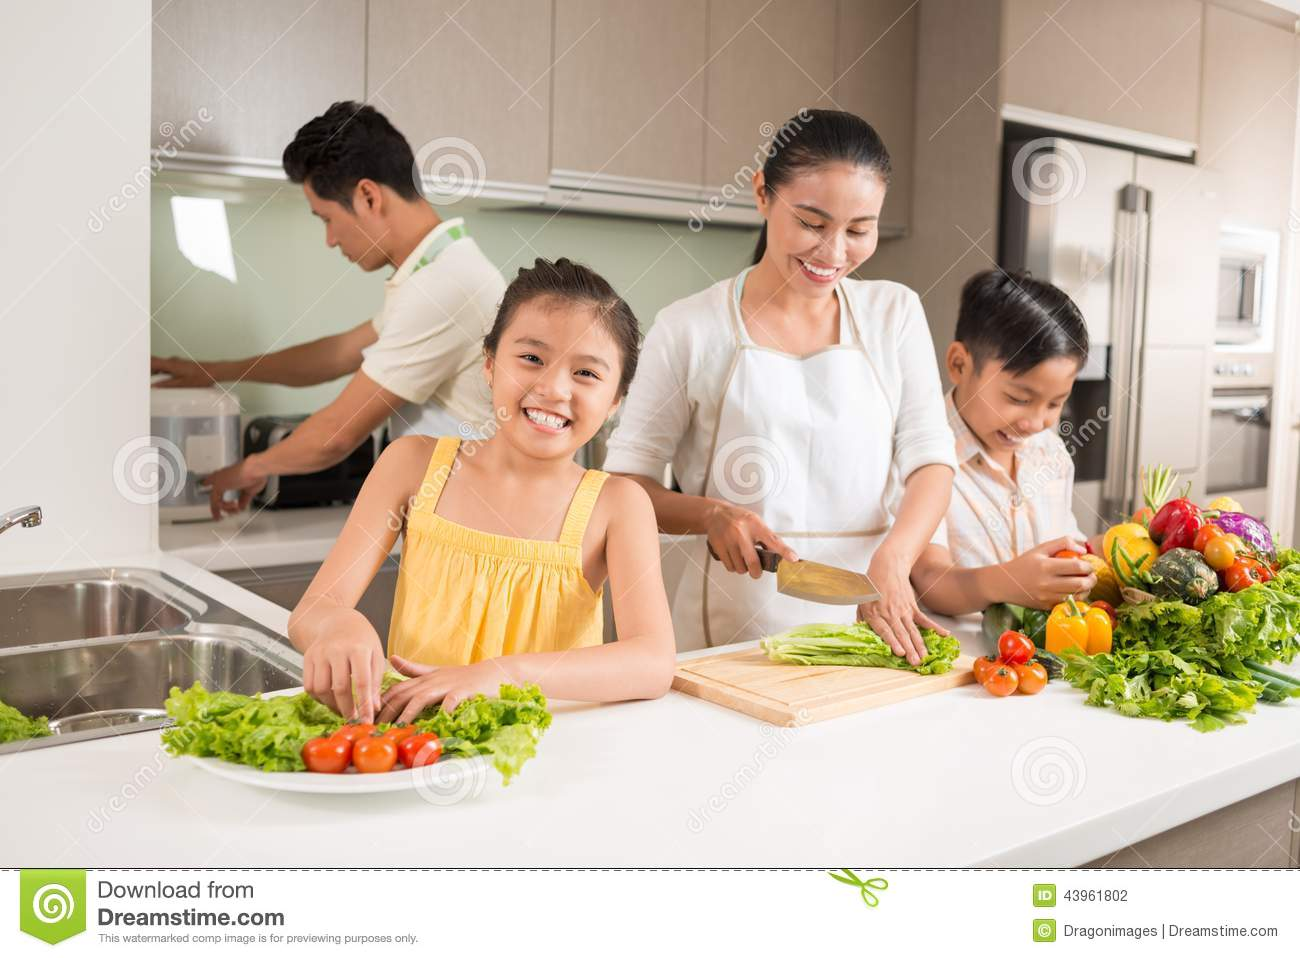 happy-vietnamese-family-cooking-dinner-together-43961802.jpg